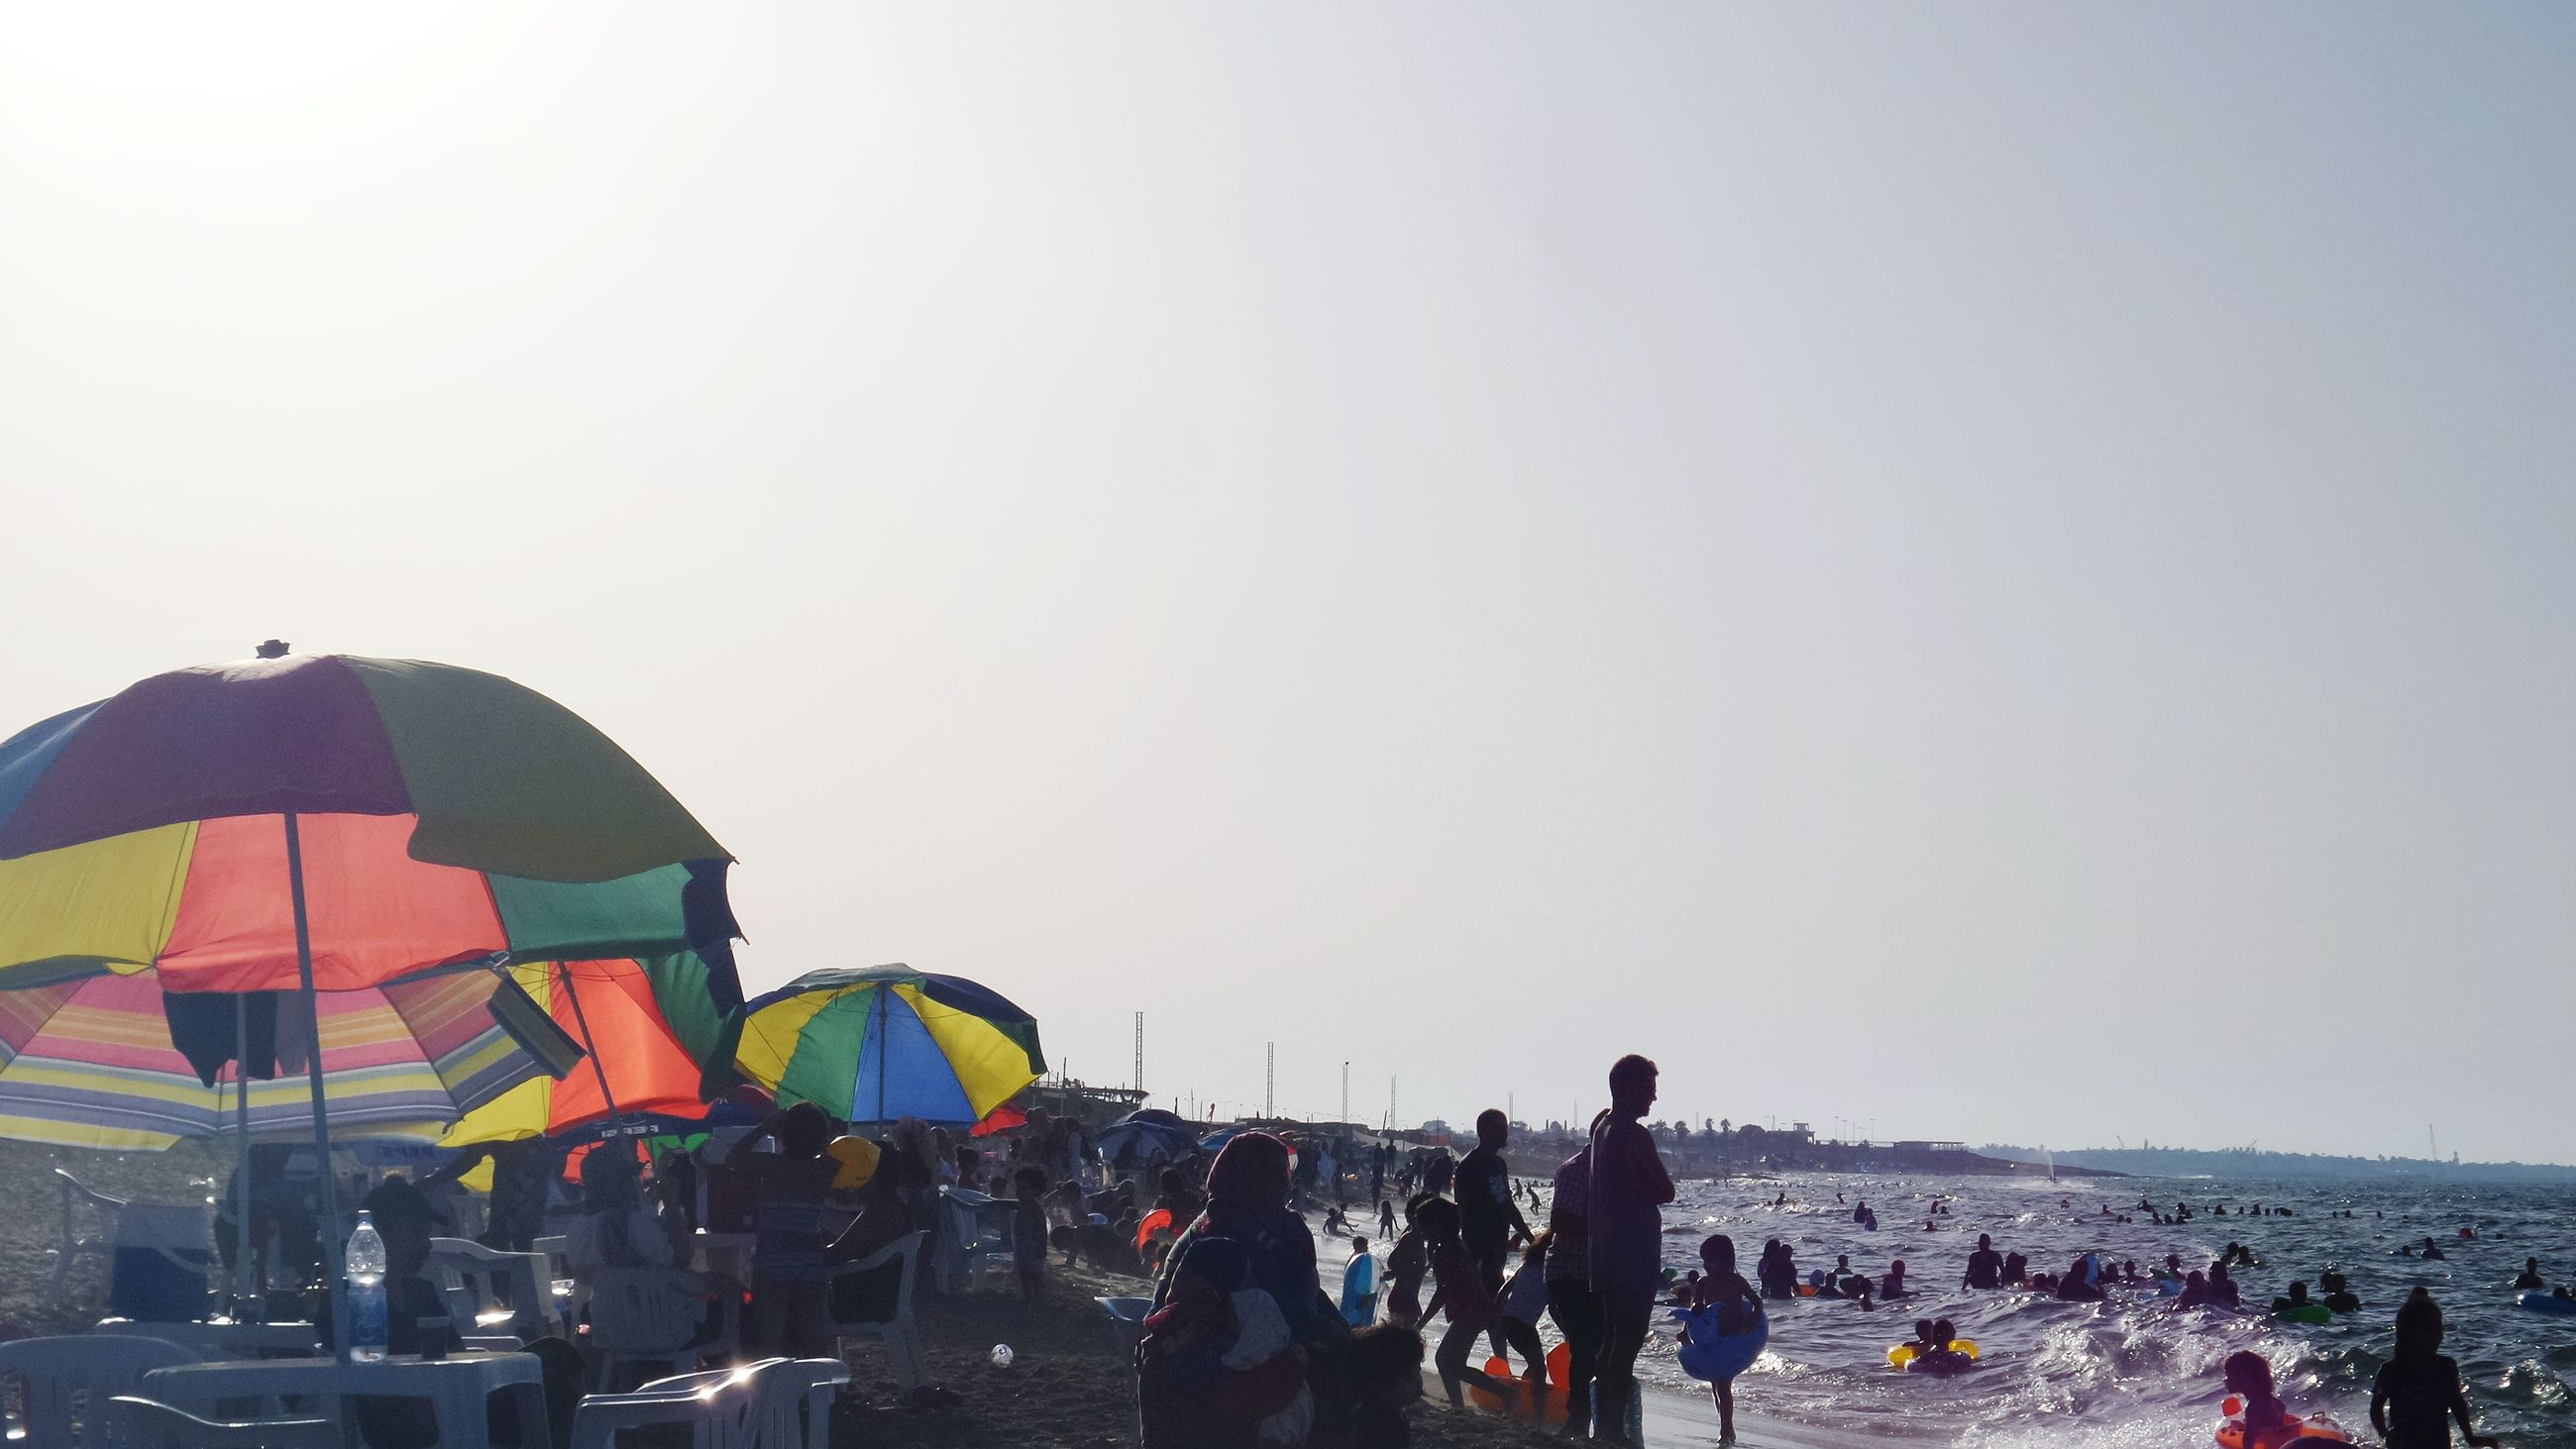 clear sky, leisure activity, lifestyles, large group of people, copy space, water, men, person, sea, enjoyment, mixed age range, vacations, sky, tourist, outdoors, horizon over water, medium group of people, nature, fun